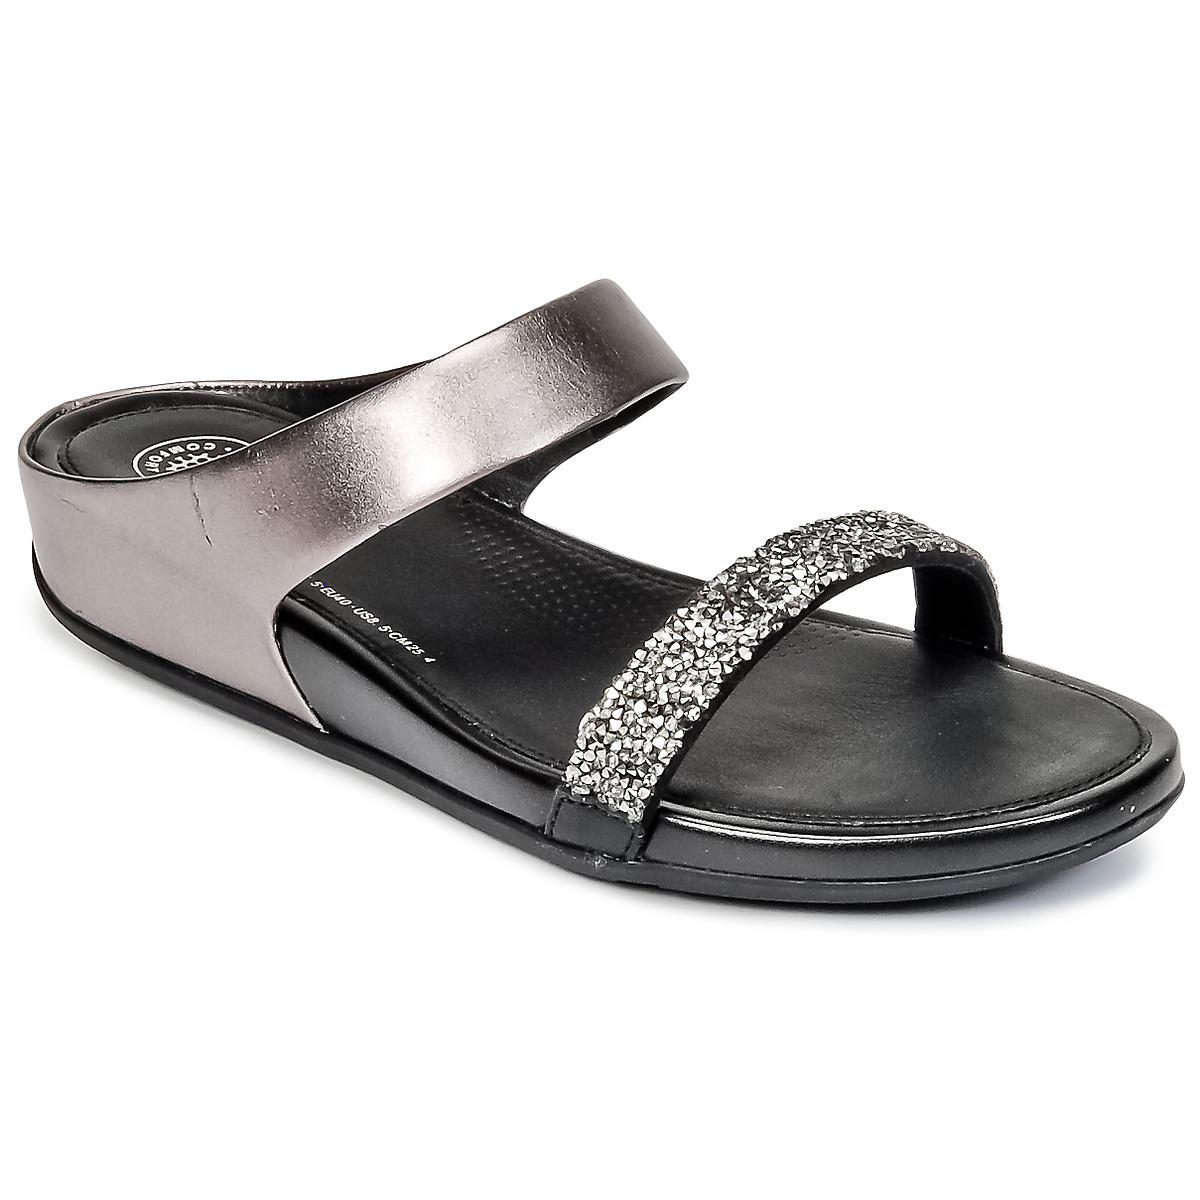 49d251e340c6ed Fitflop Banda Roxy Slide Women s Sandals In Silver in Metallic - Lyst